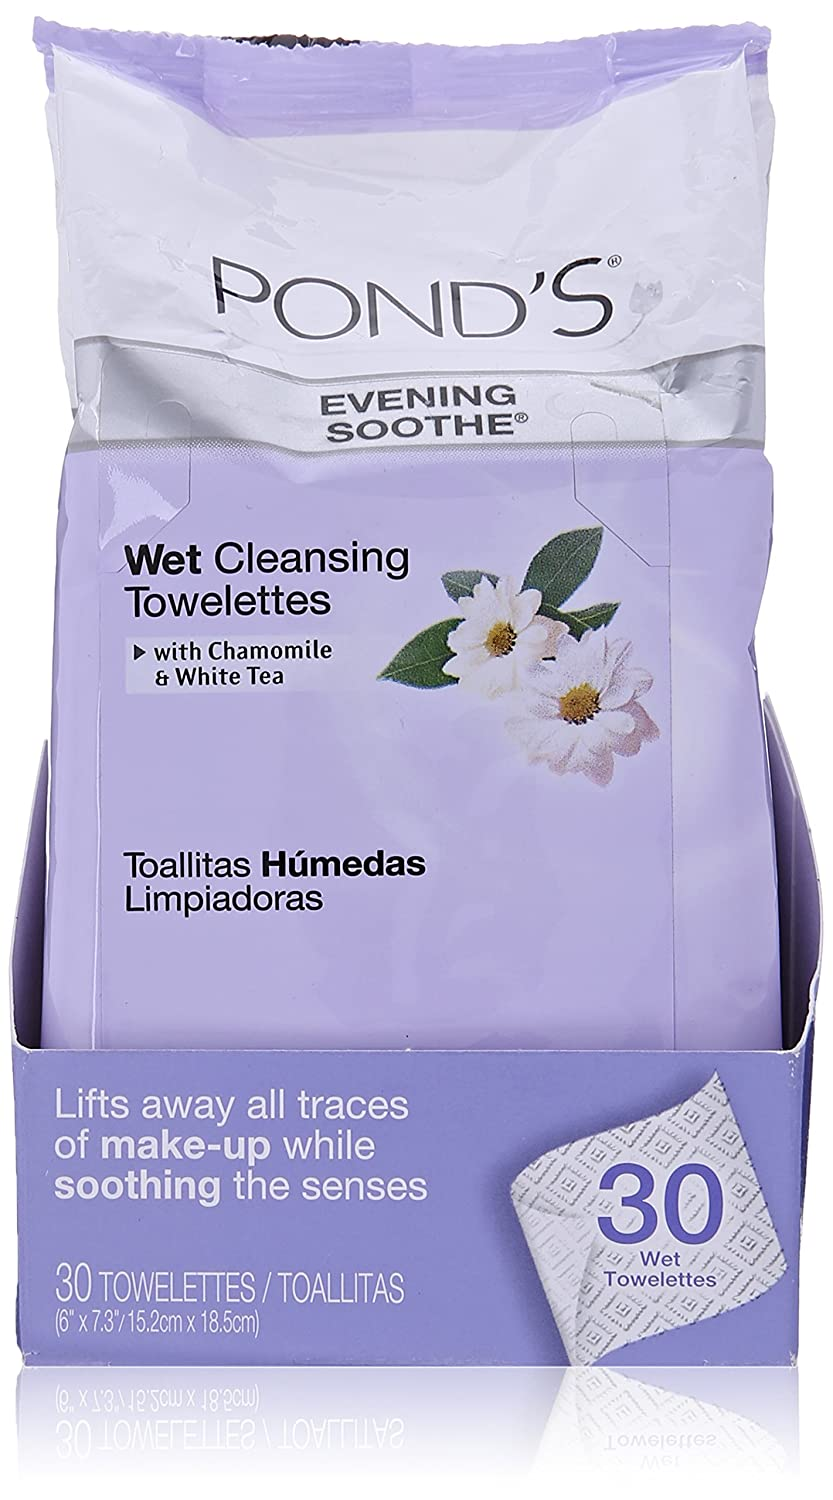 Ponds Wet Cleansing Towelettes Evening Soothe with Chamomile & White Tea 30-Count: Amazon.es: Electrónica